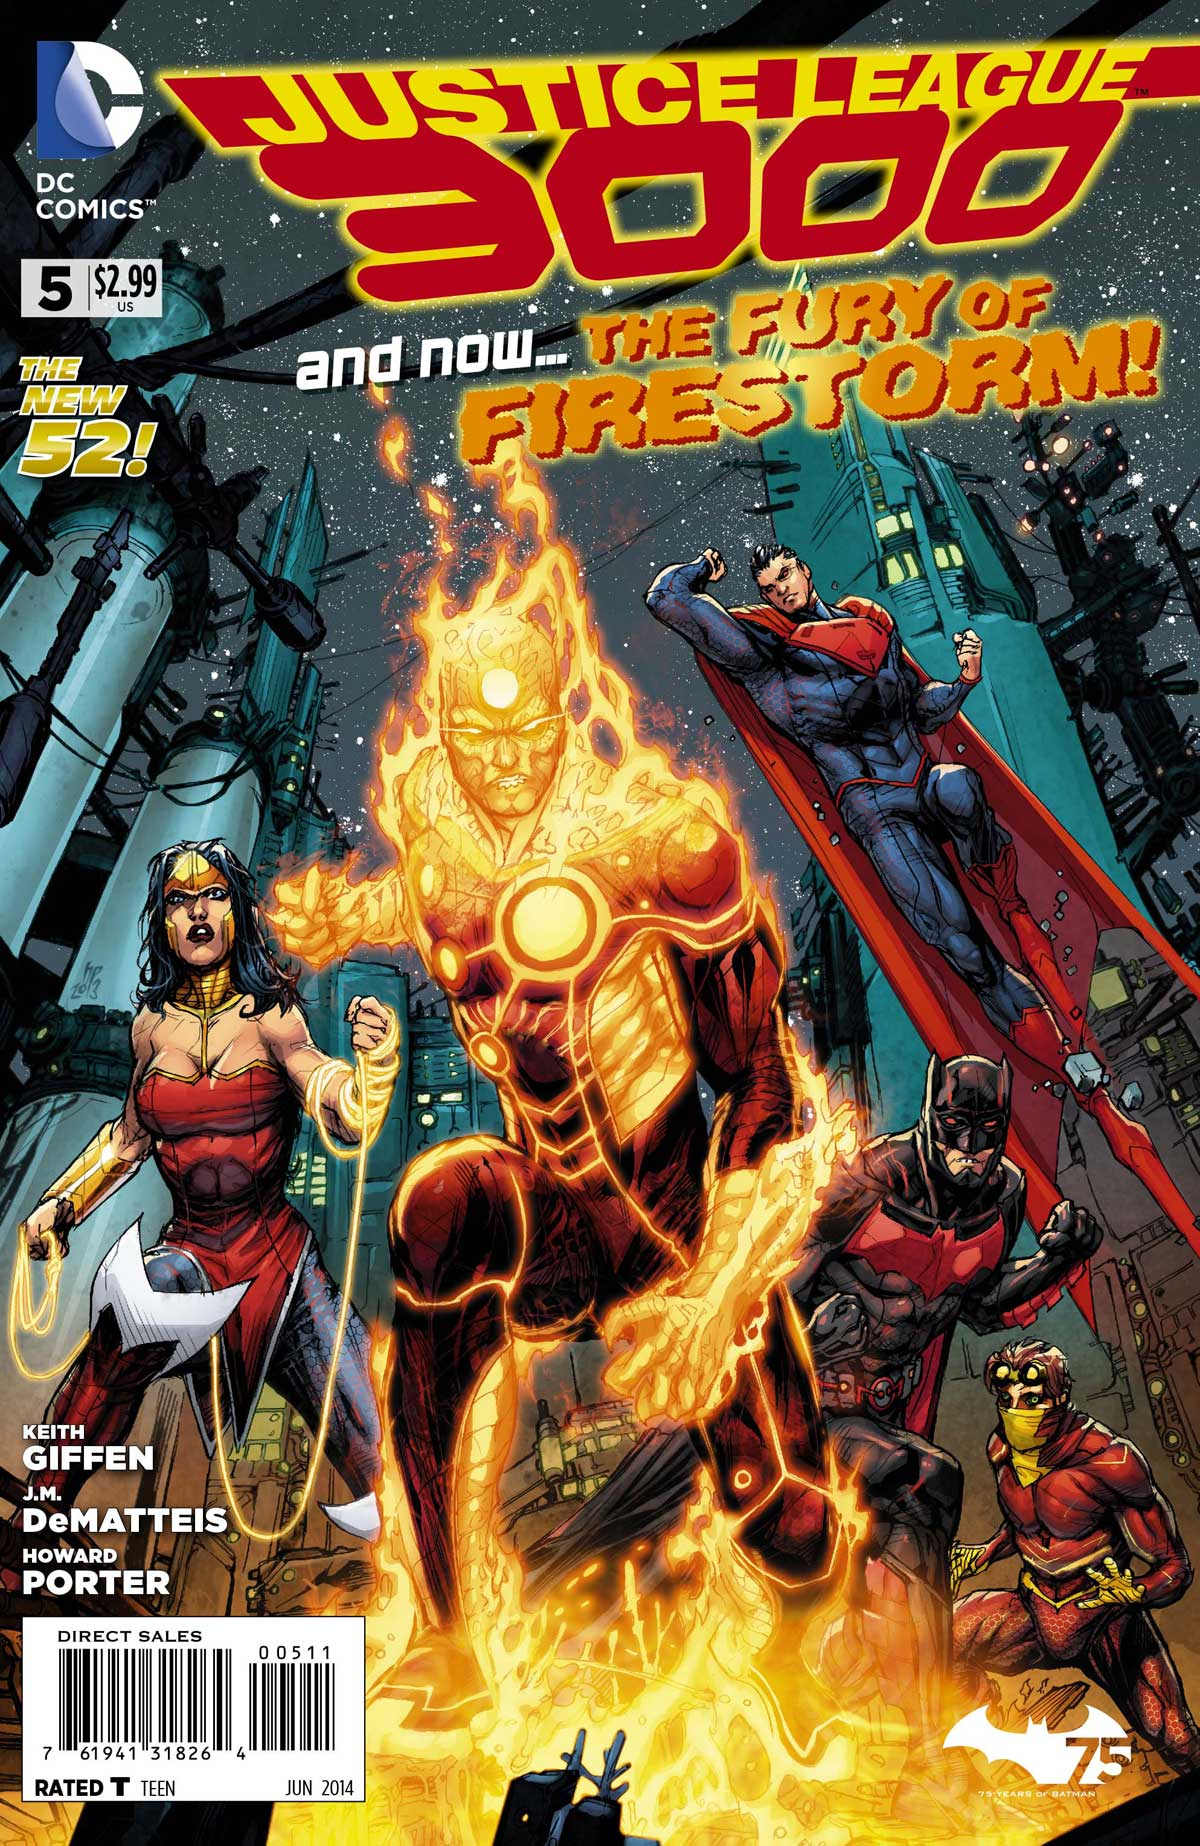 Justice League 3000 #5 cover by Howard Porter featuring Firestorm